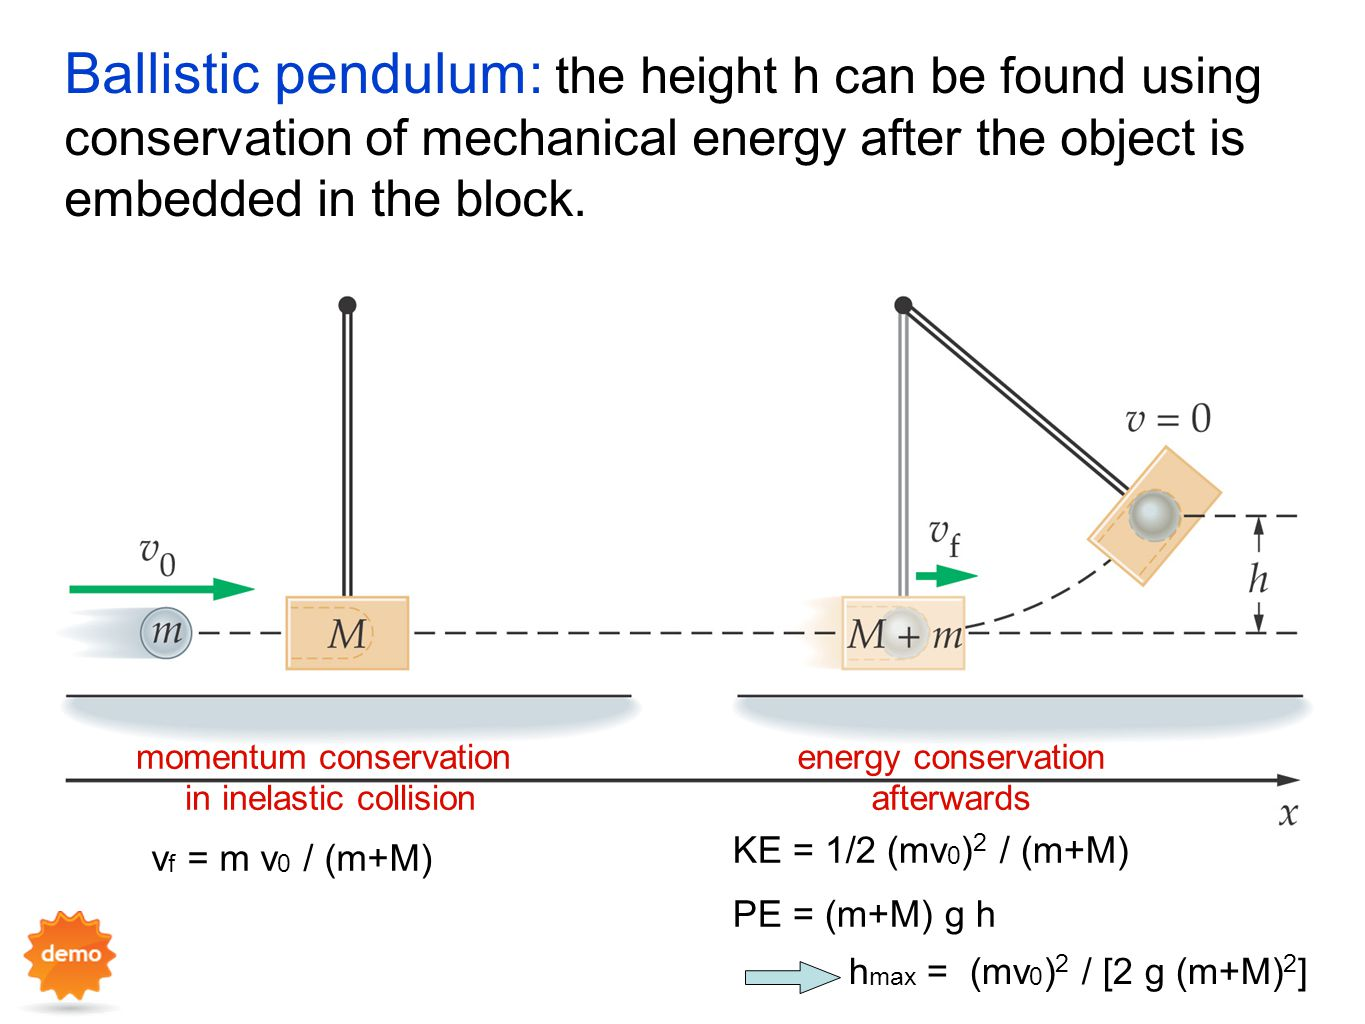 Ballistic pendulum: the height h can be found using conservation of mechanical energy after the object is embedded in the block.